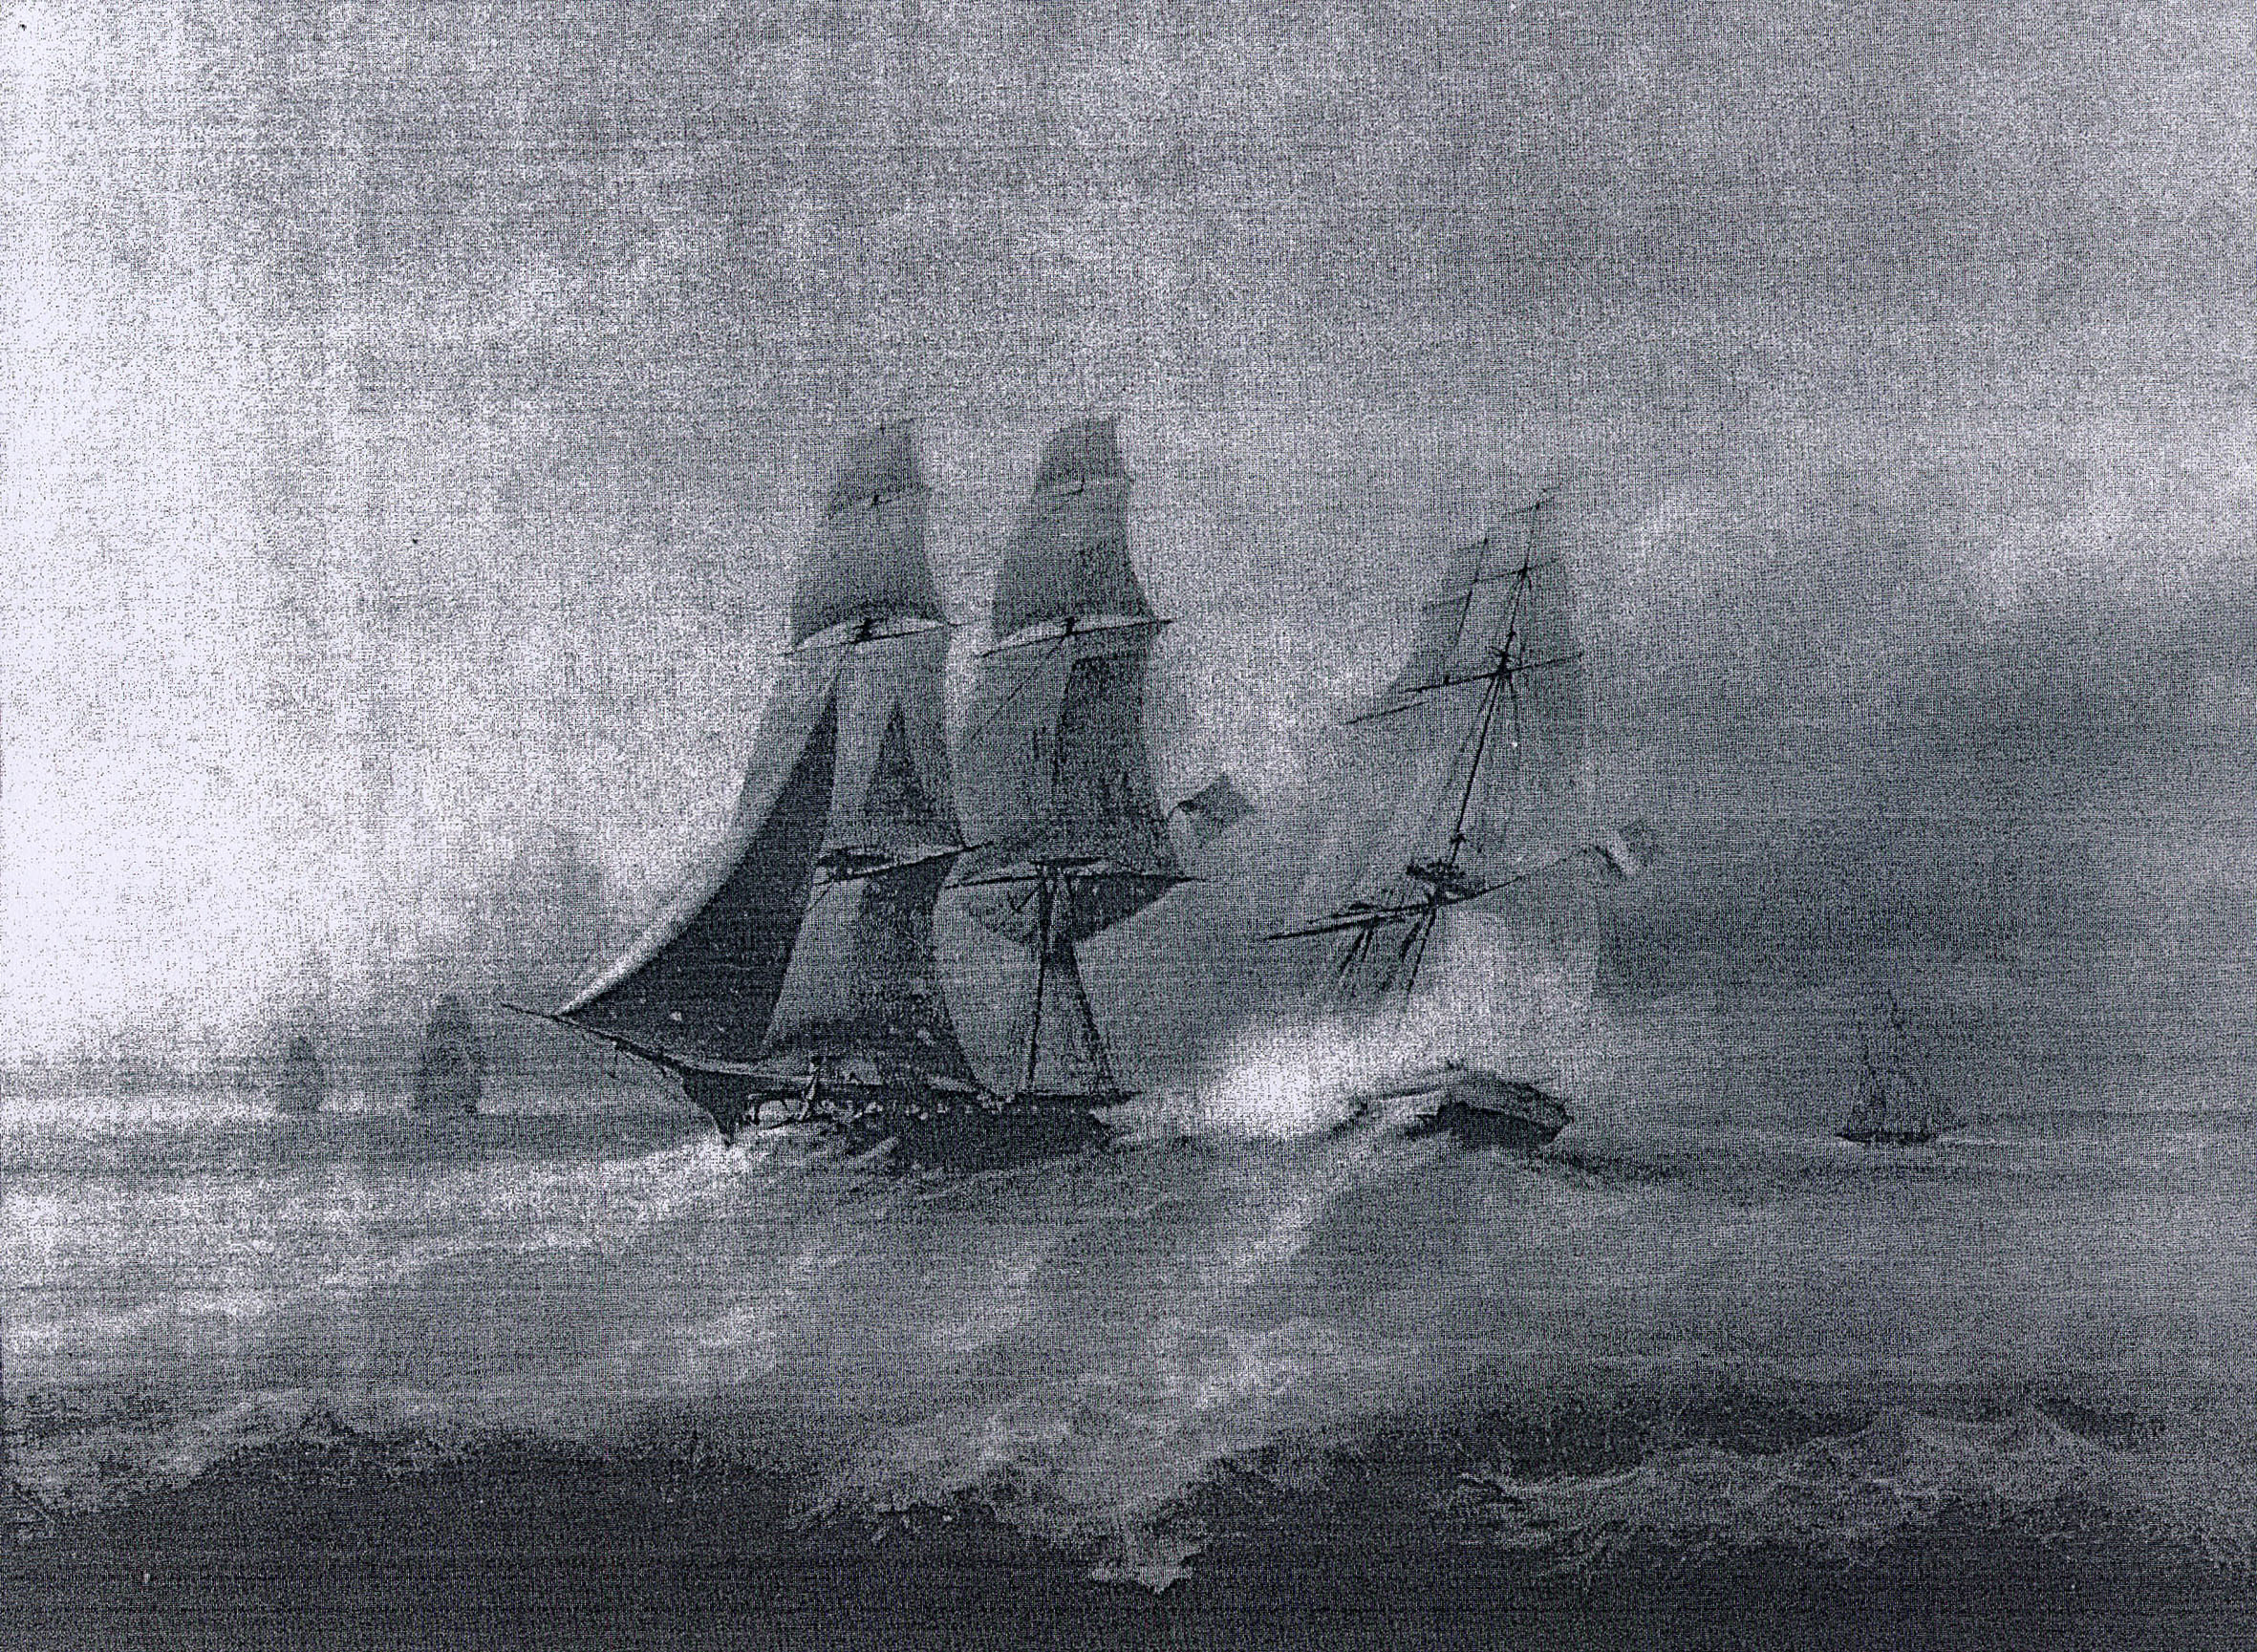 A photograph of the painting of the battle between the French Brig   Renard   and the English Brig   HMS Swallow   in 1812